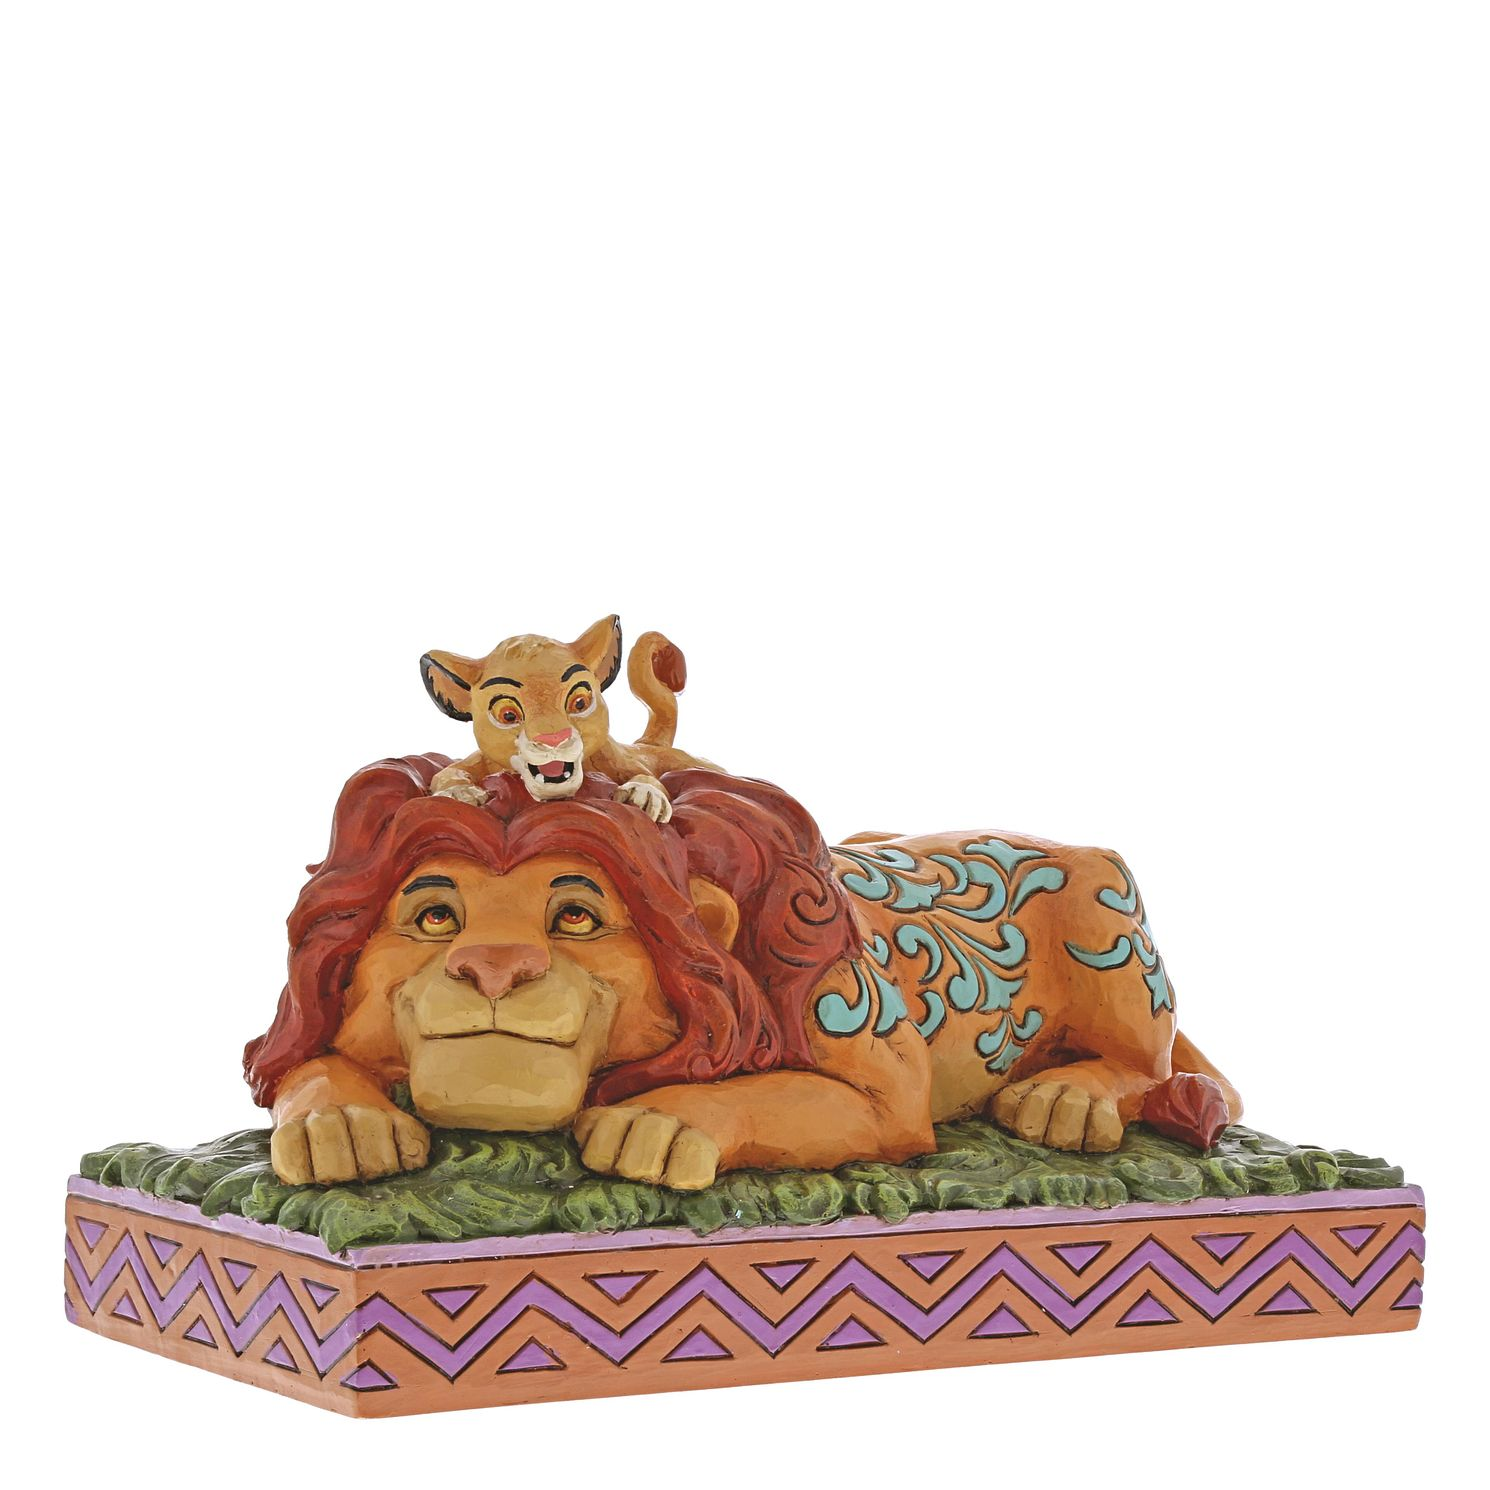 Disney Traditions The Lion King Mufasa & Simba Figurine - Product number 3850544